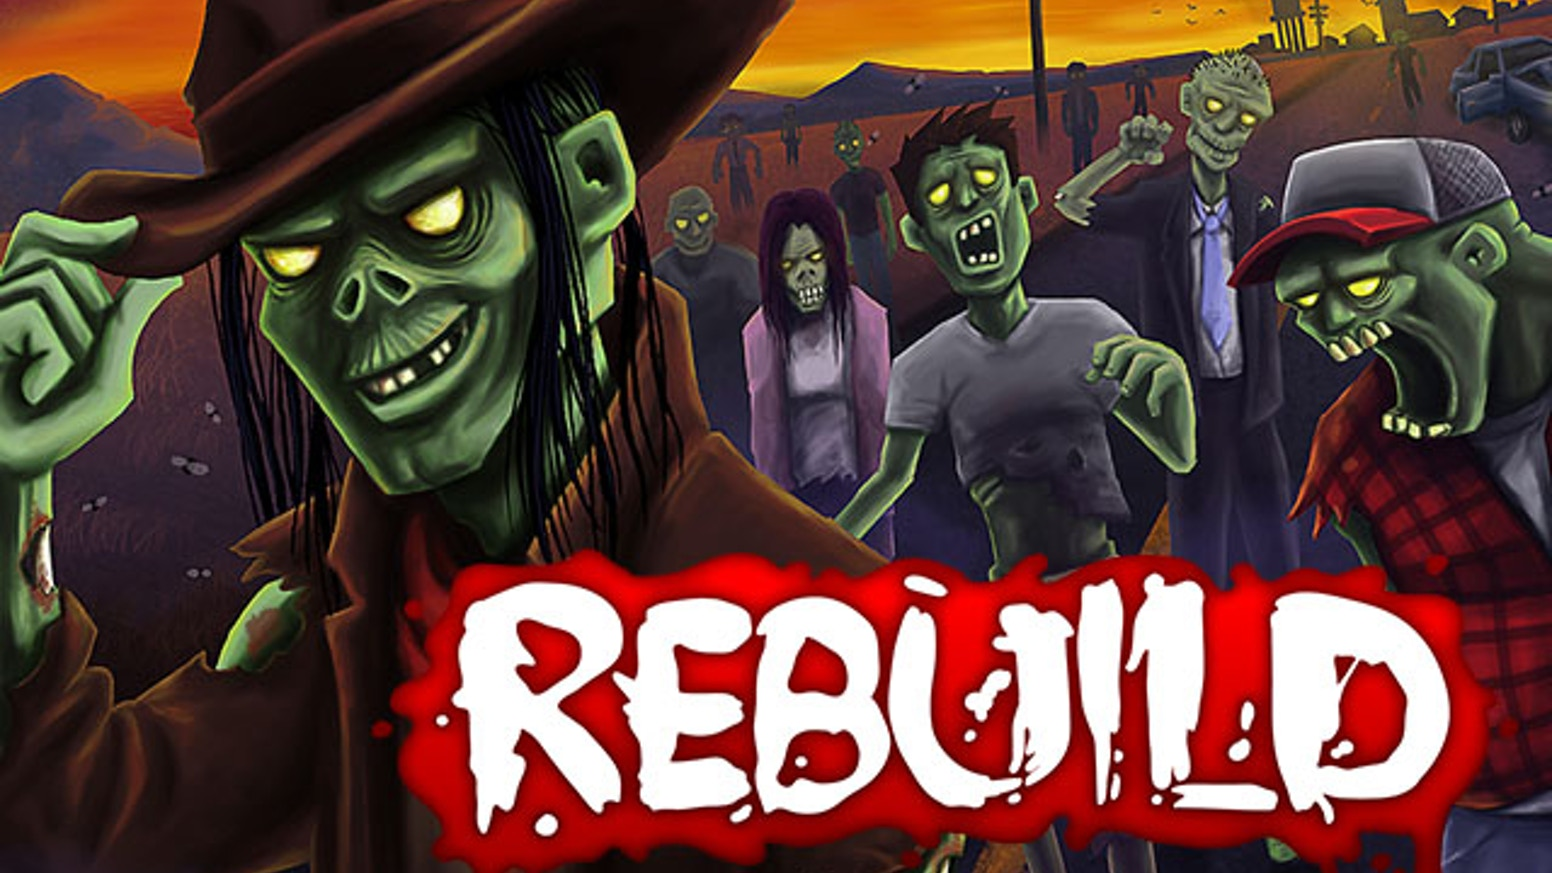 It's Sim City meets The Walking Dead. Rebuild civilization one building at a time in this strategy game for Win, Mac, iOS, & Android.